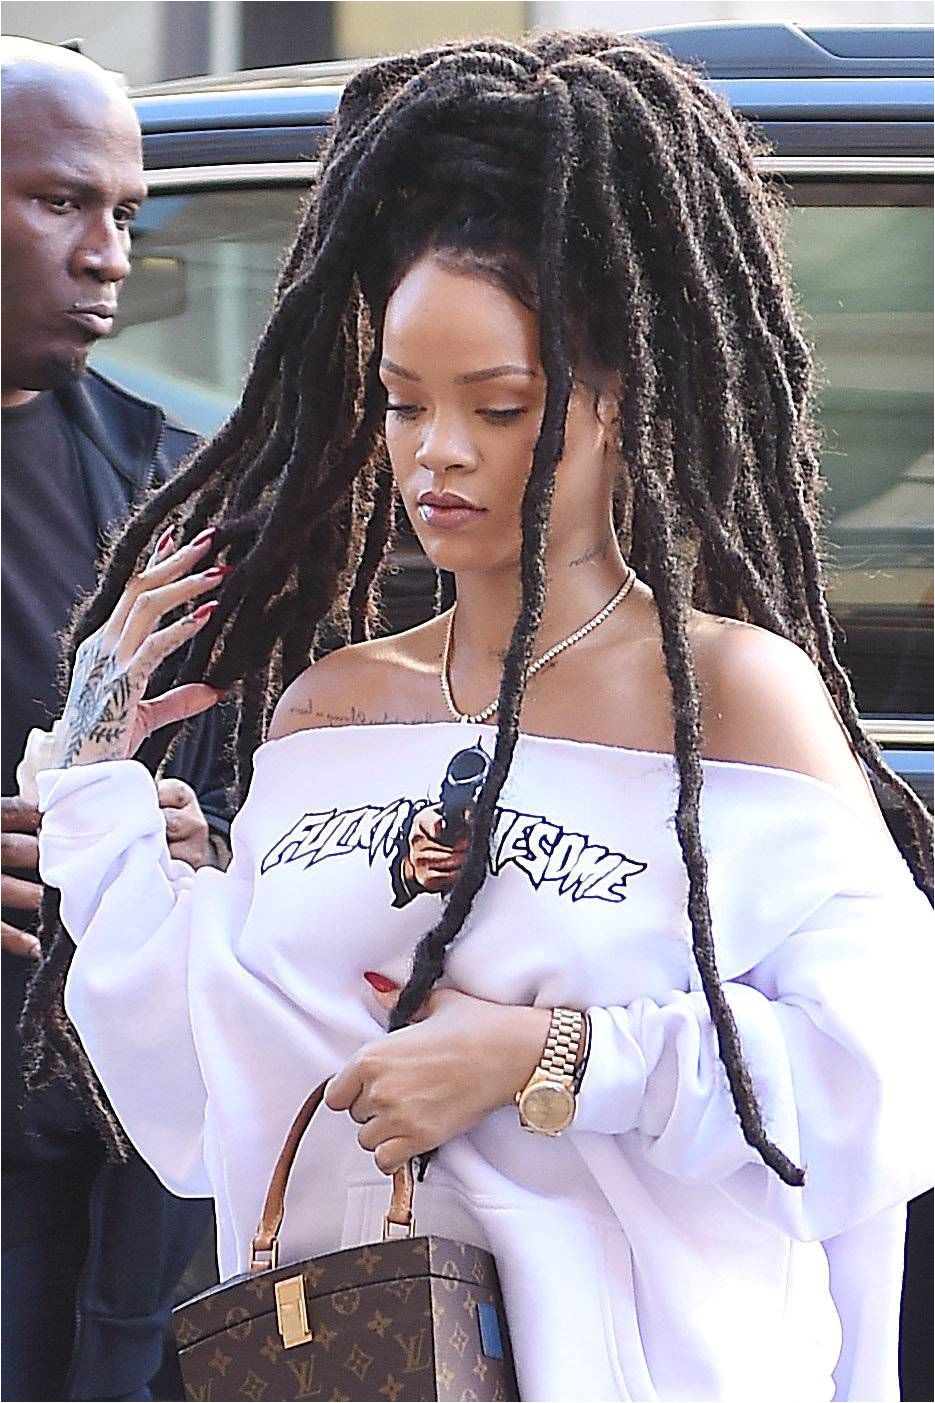 NEW YORK NY OCTOBER 06 Rihanna is seen on October 6 2016 in New York City by NCP Star Max GC BraidedHairstyleForBlackWomen